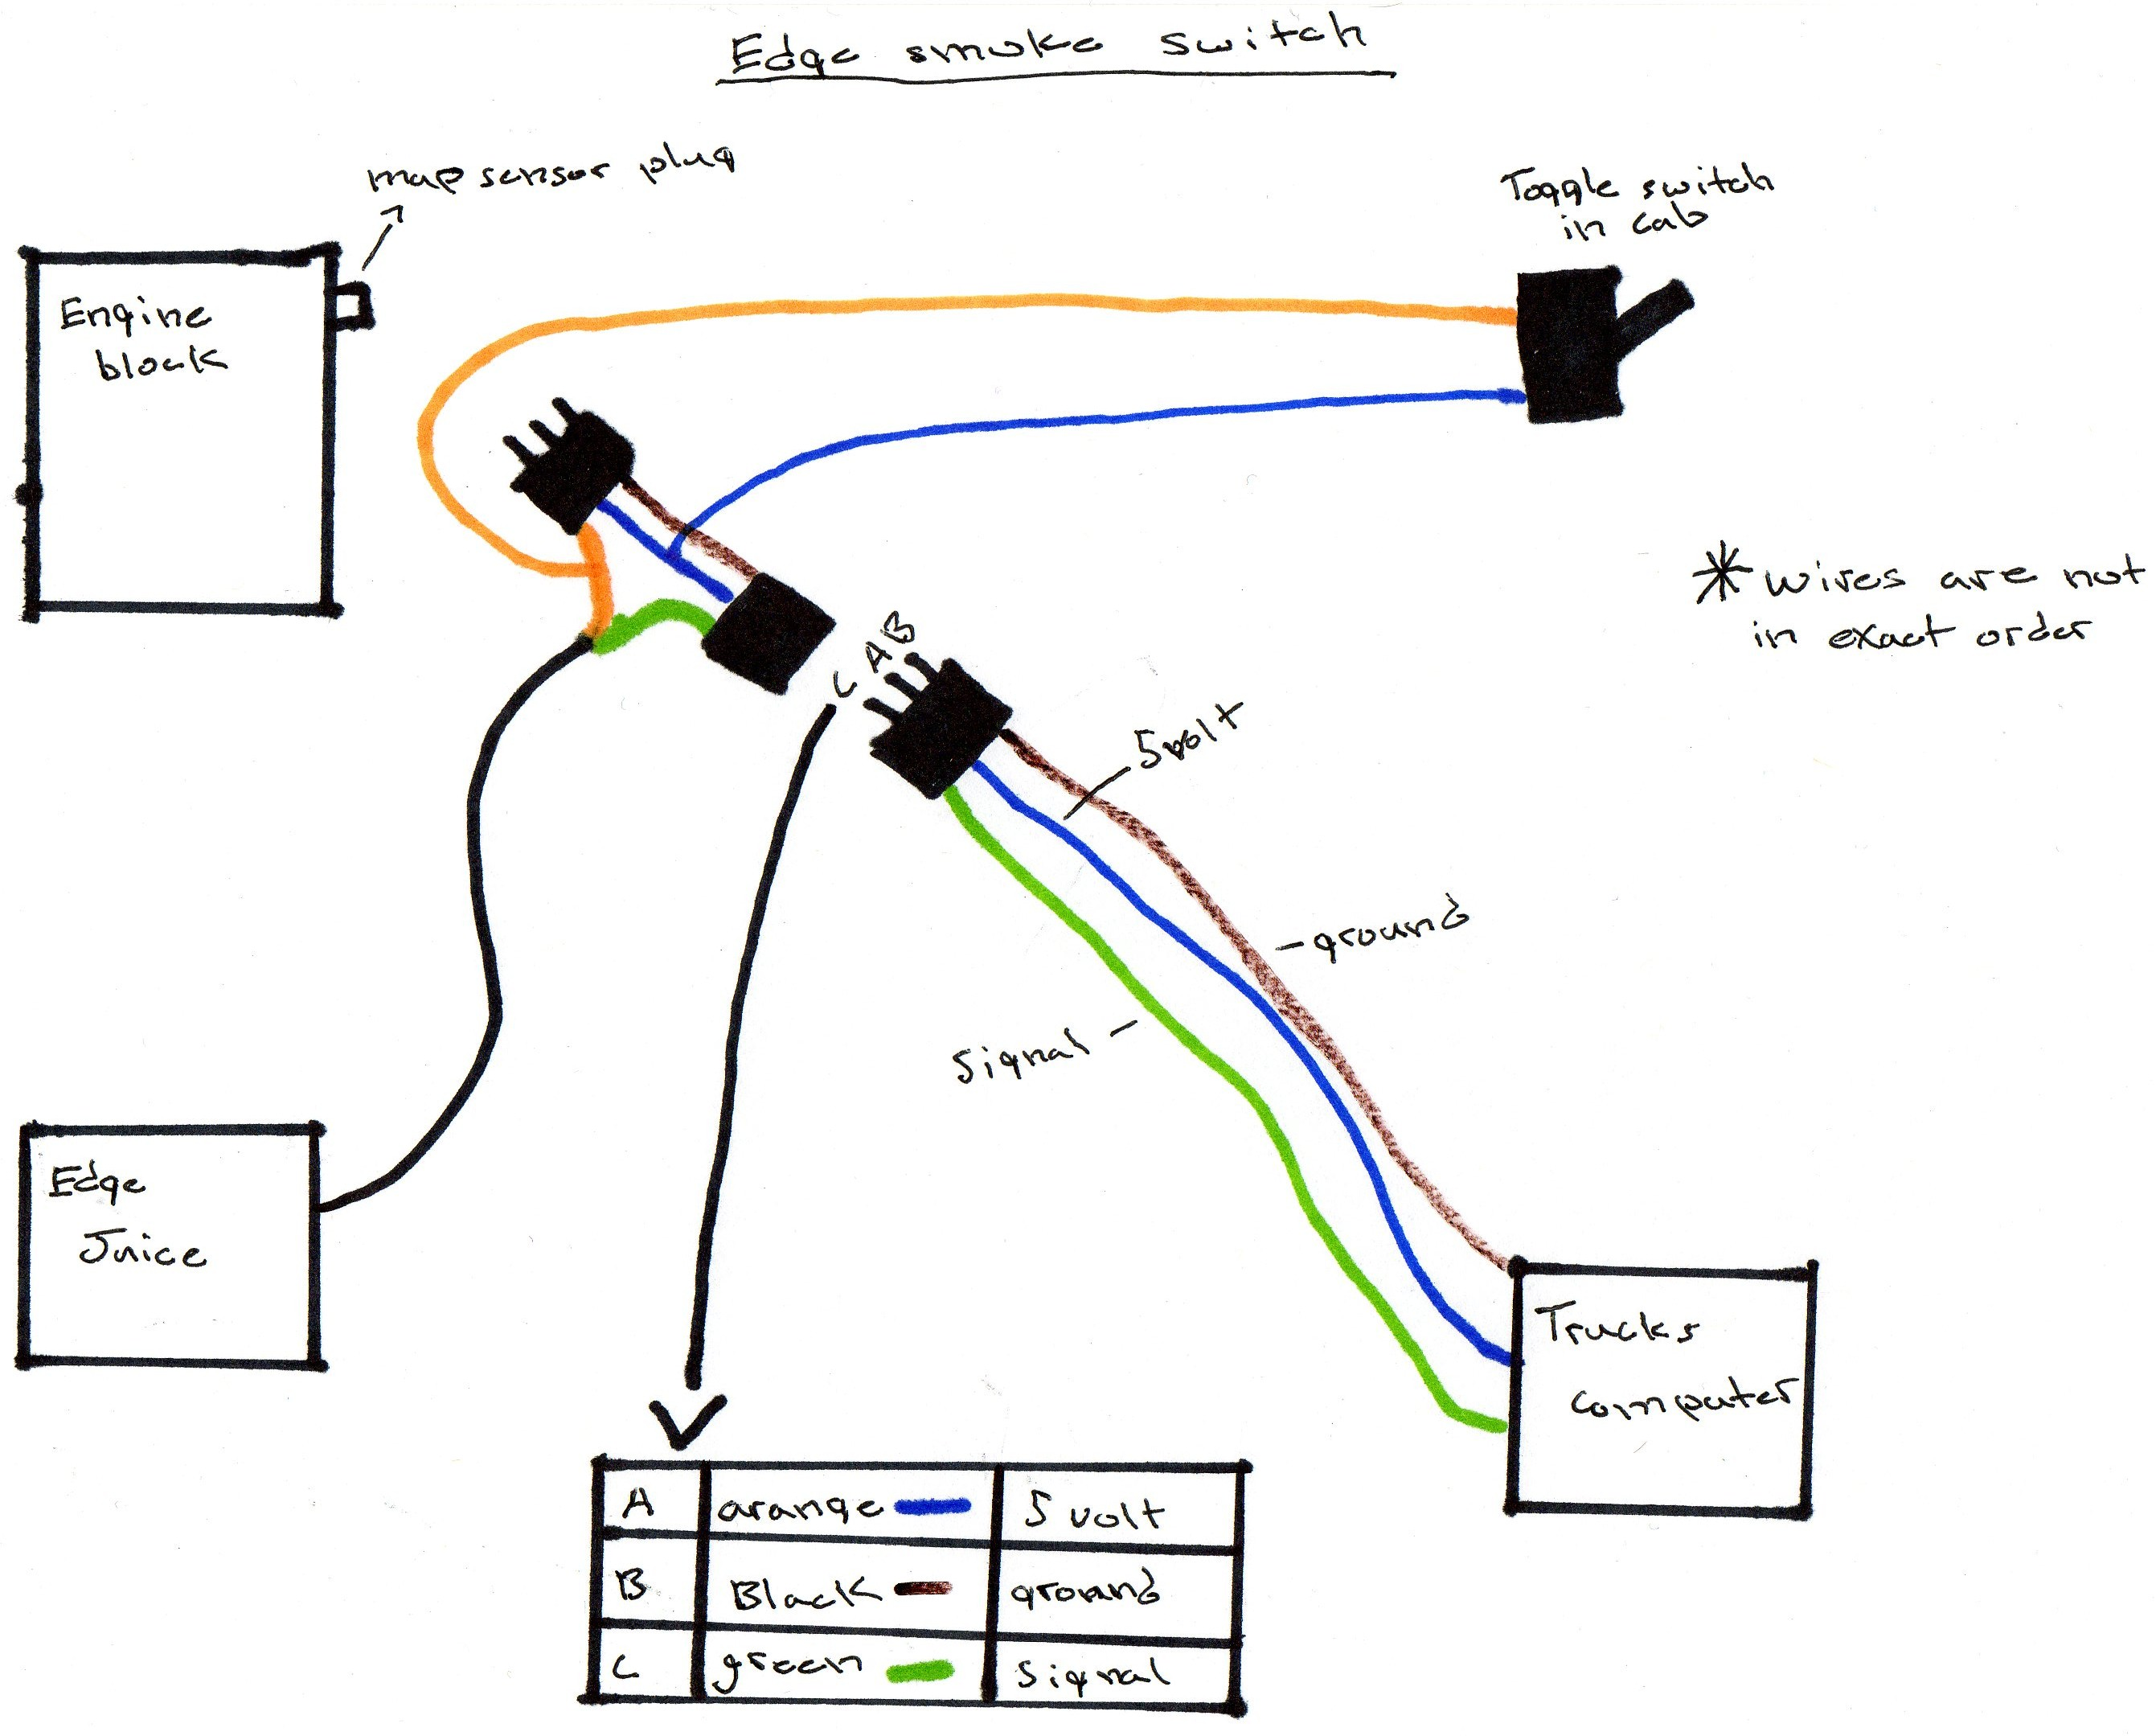 2004 dodge ram 3500 fan clutch wiring diagram